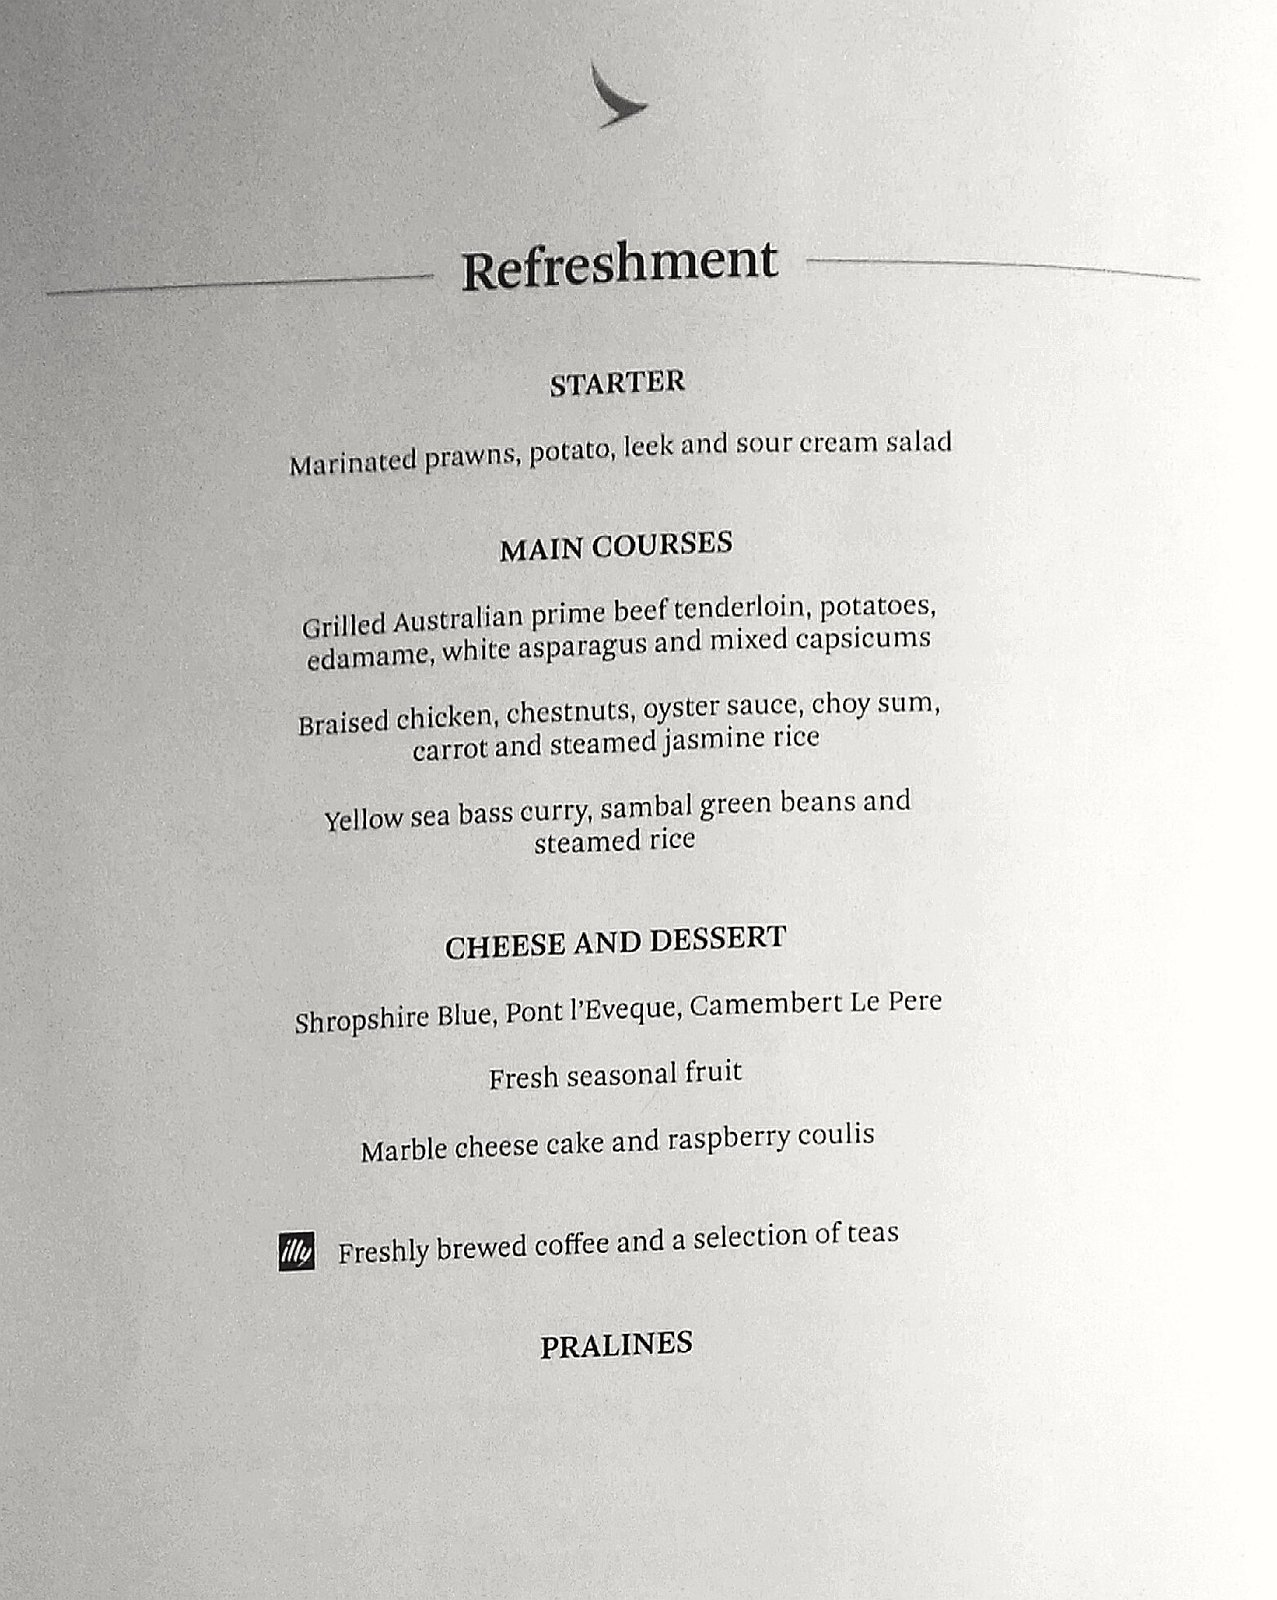 Refreshment menu